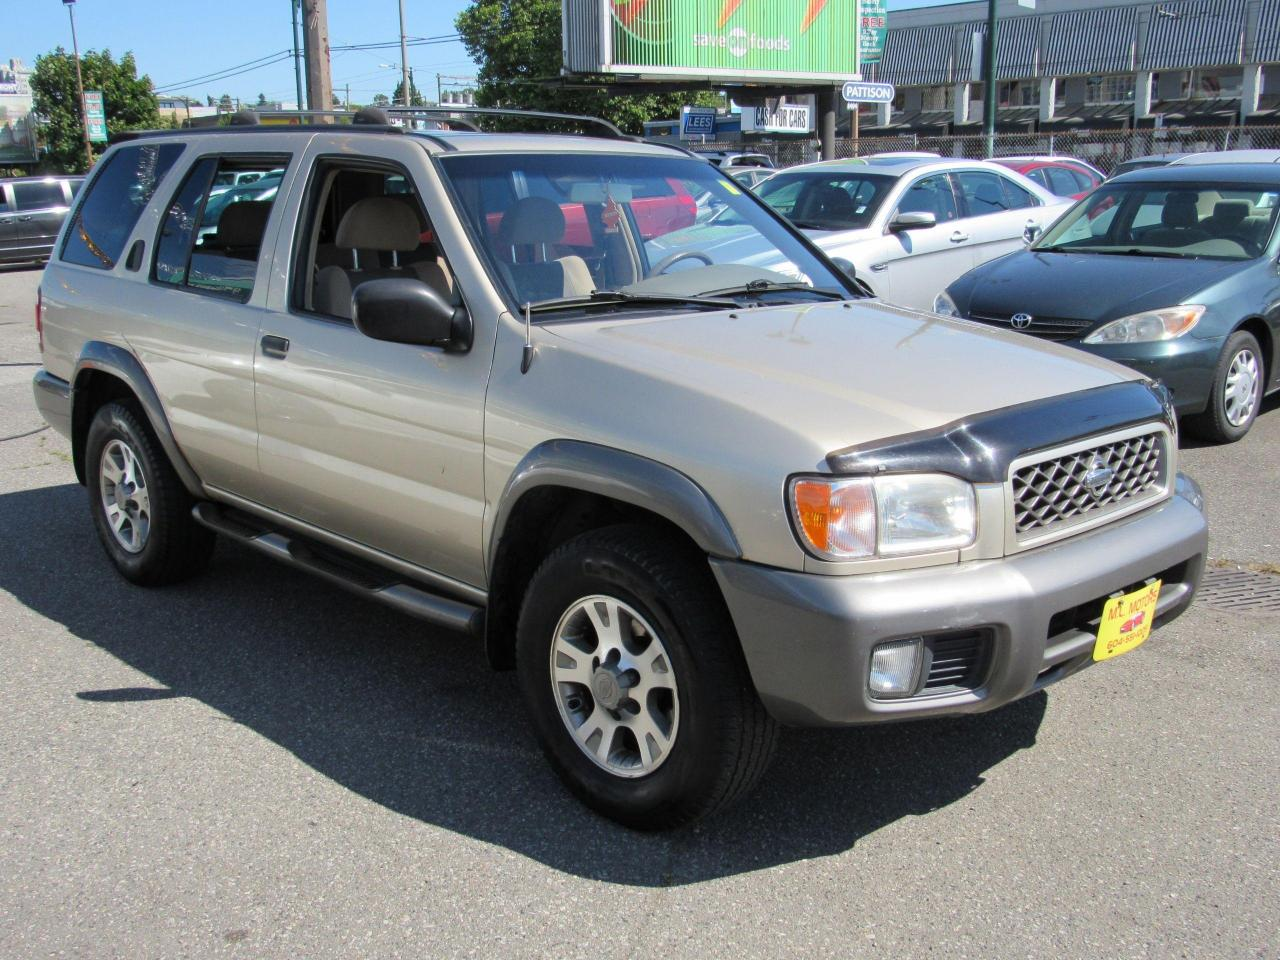 used 2001 nissan pathfinder se for sale in vancouver, british columbia carpages.ca